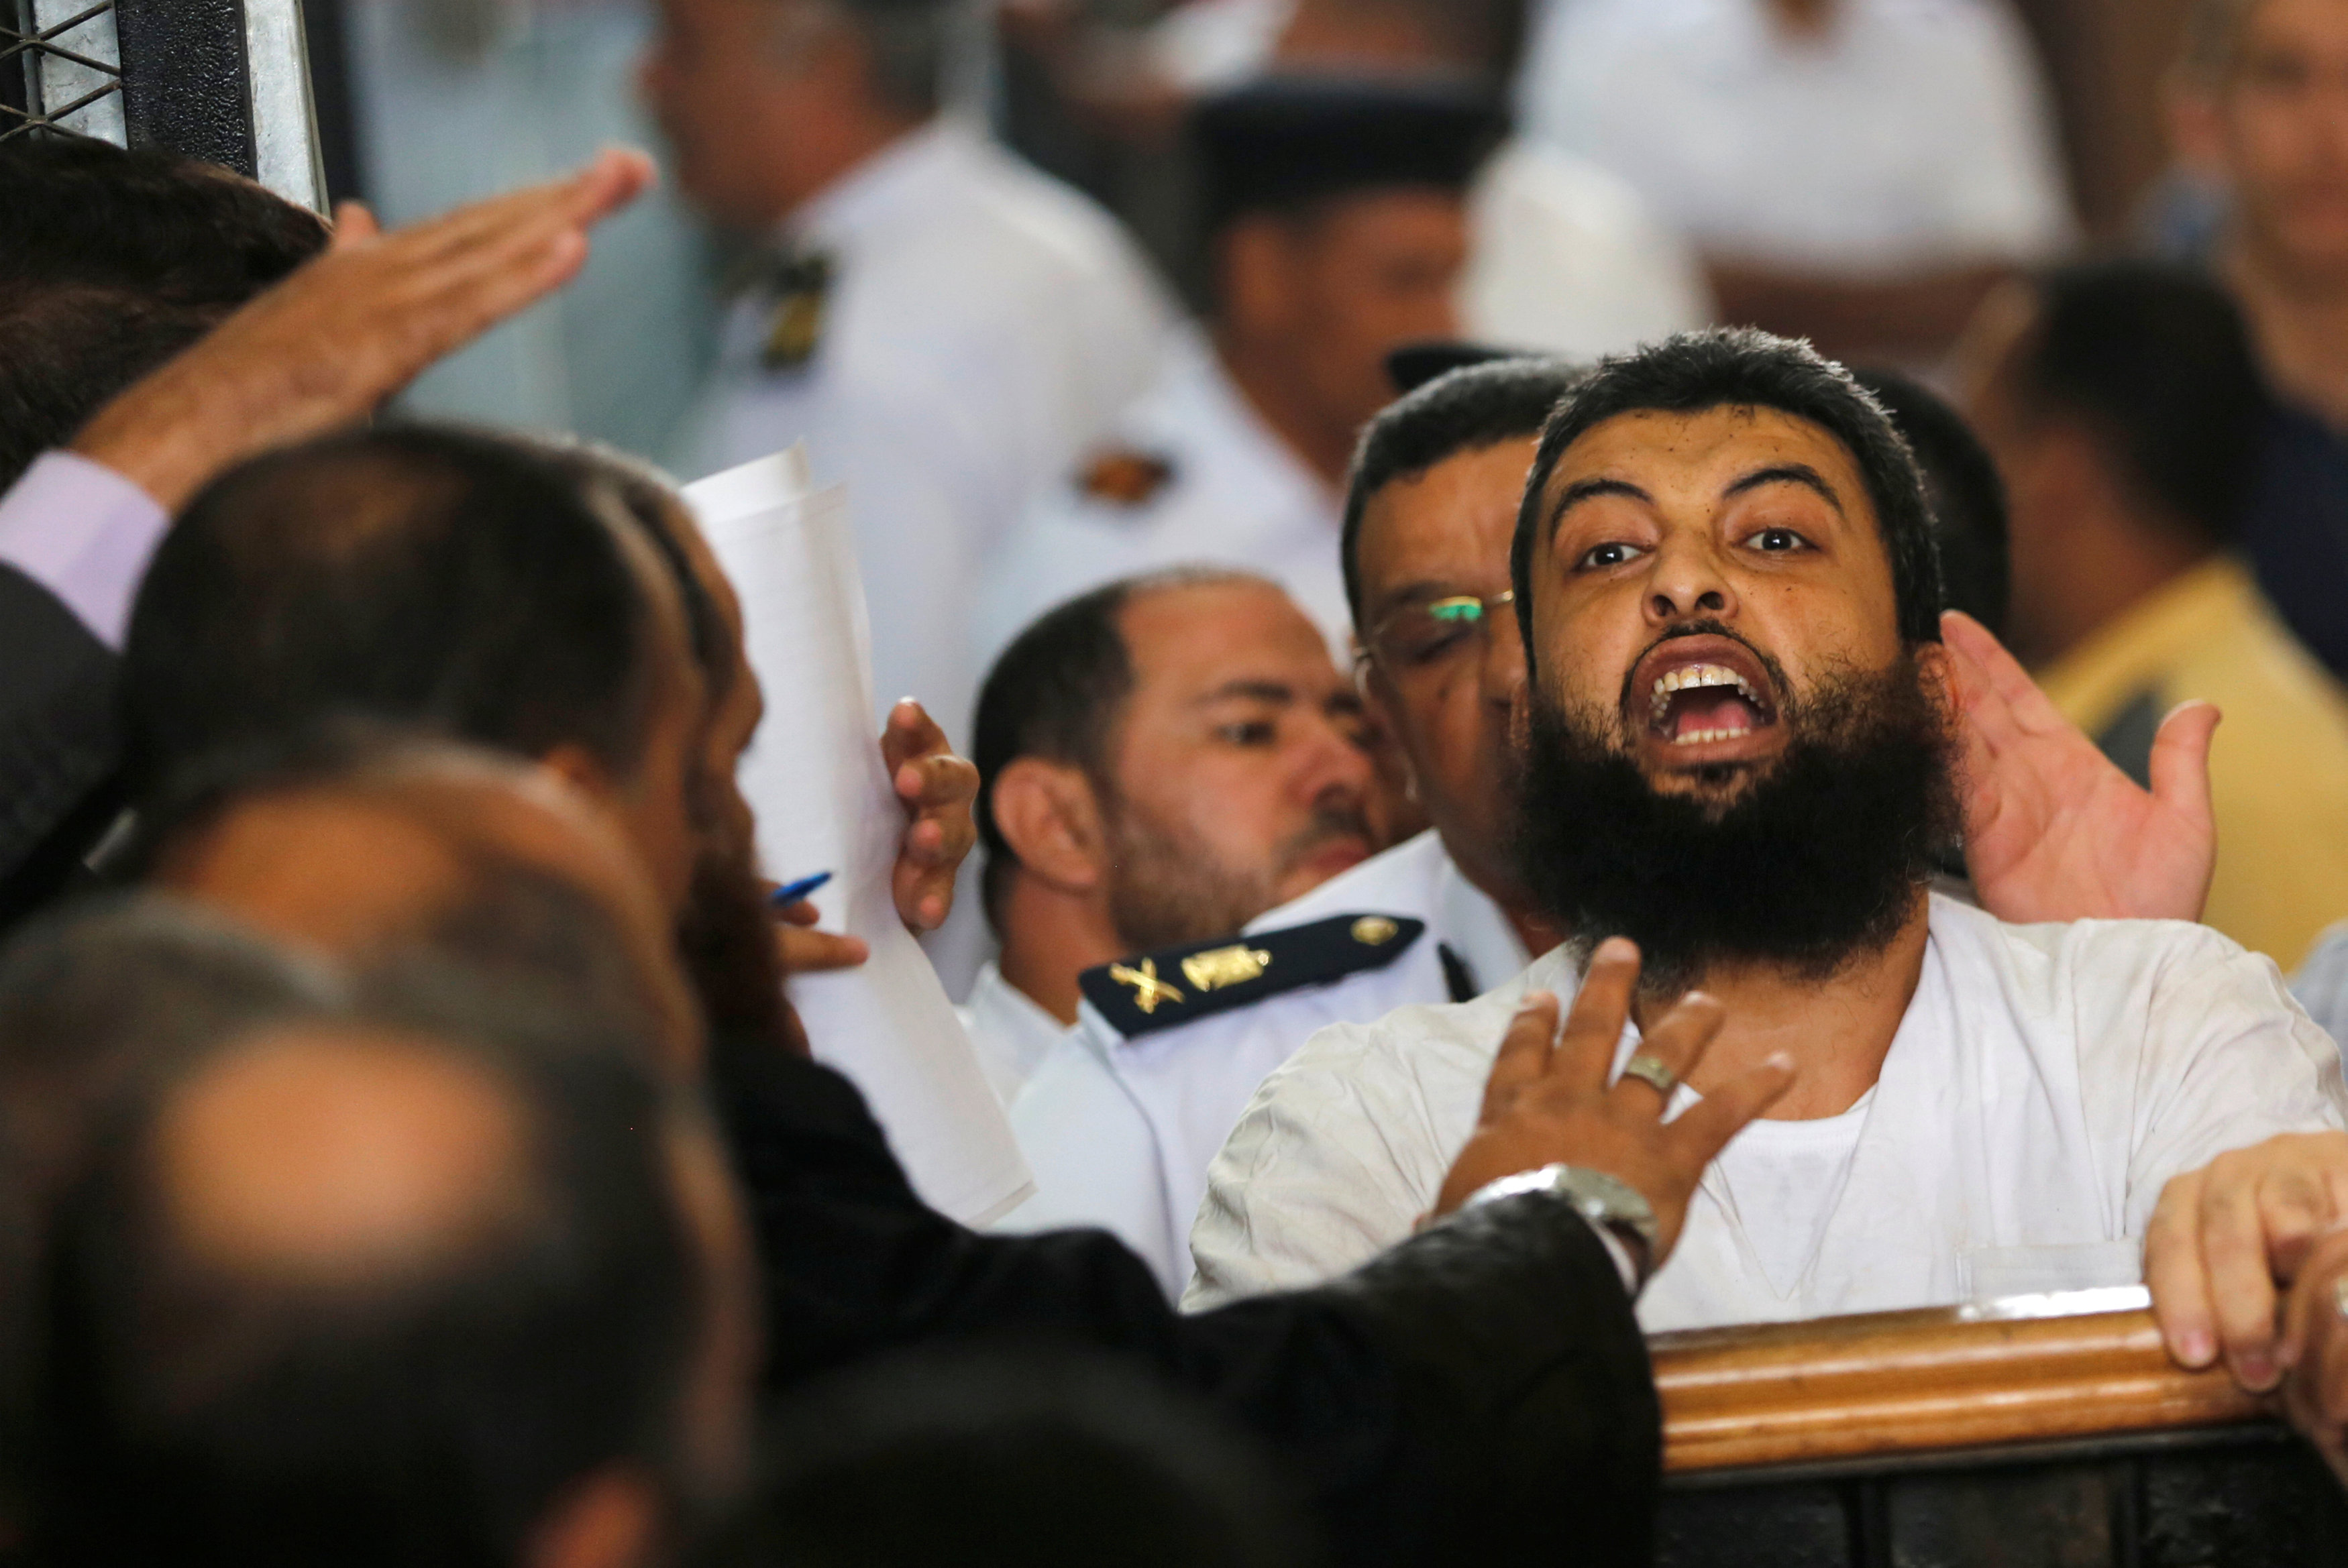 Dormant threat. A 2016 file picture shows a defendant, who is a member of the Muslim Brotherhood, during his trial at a court on the outskirts of Cairo.  (AFP)